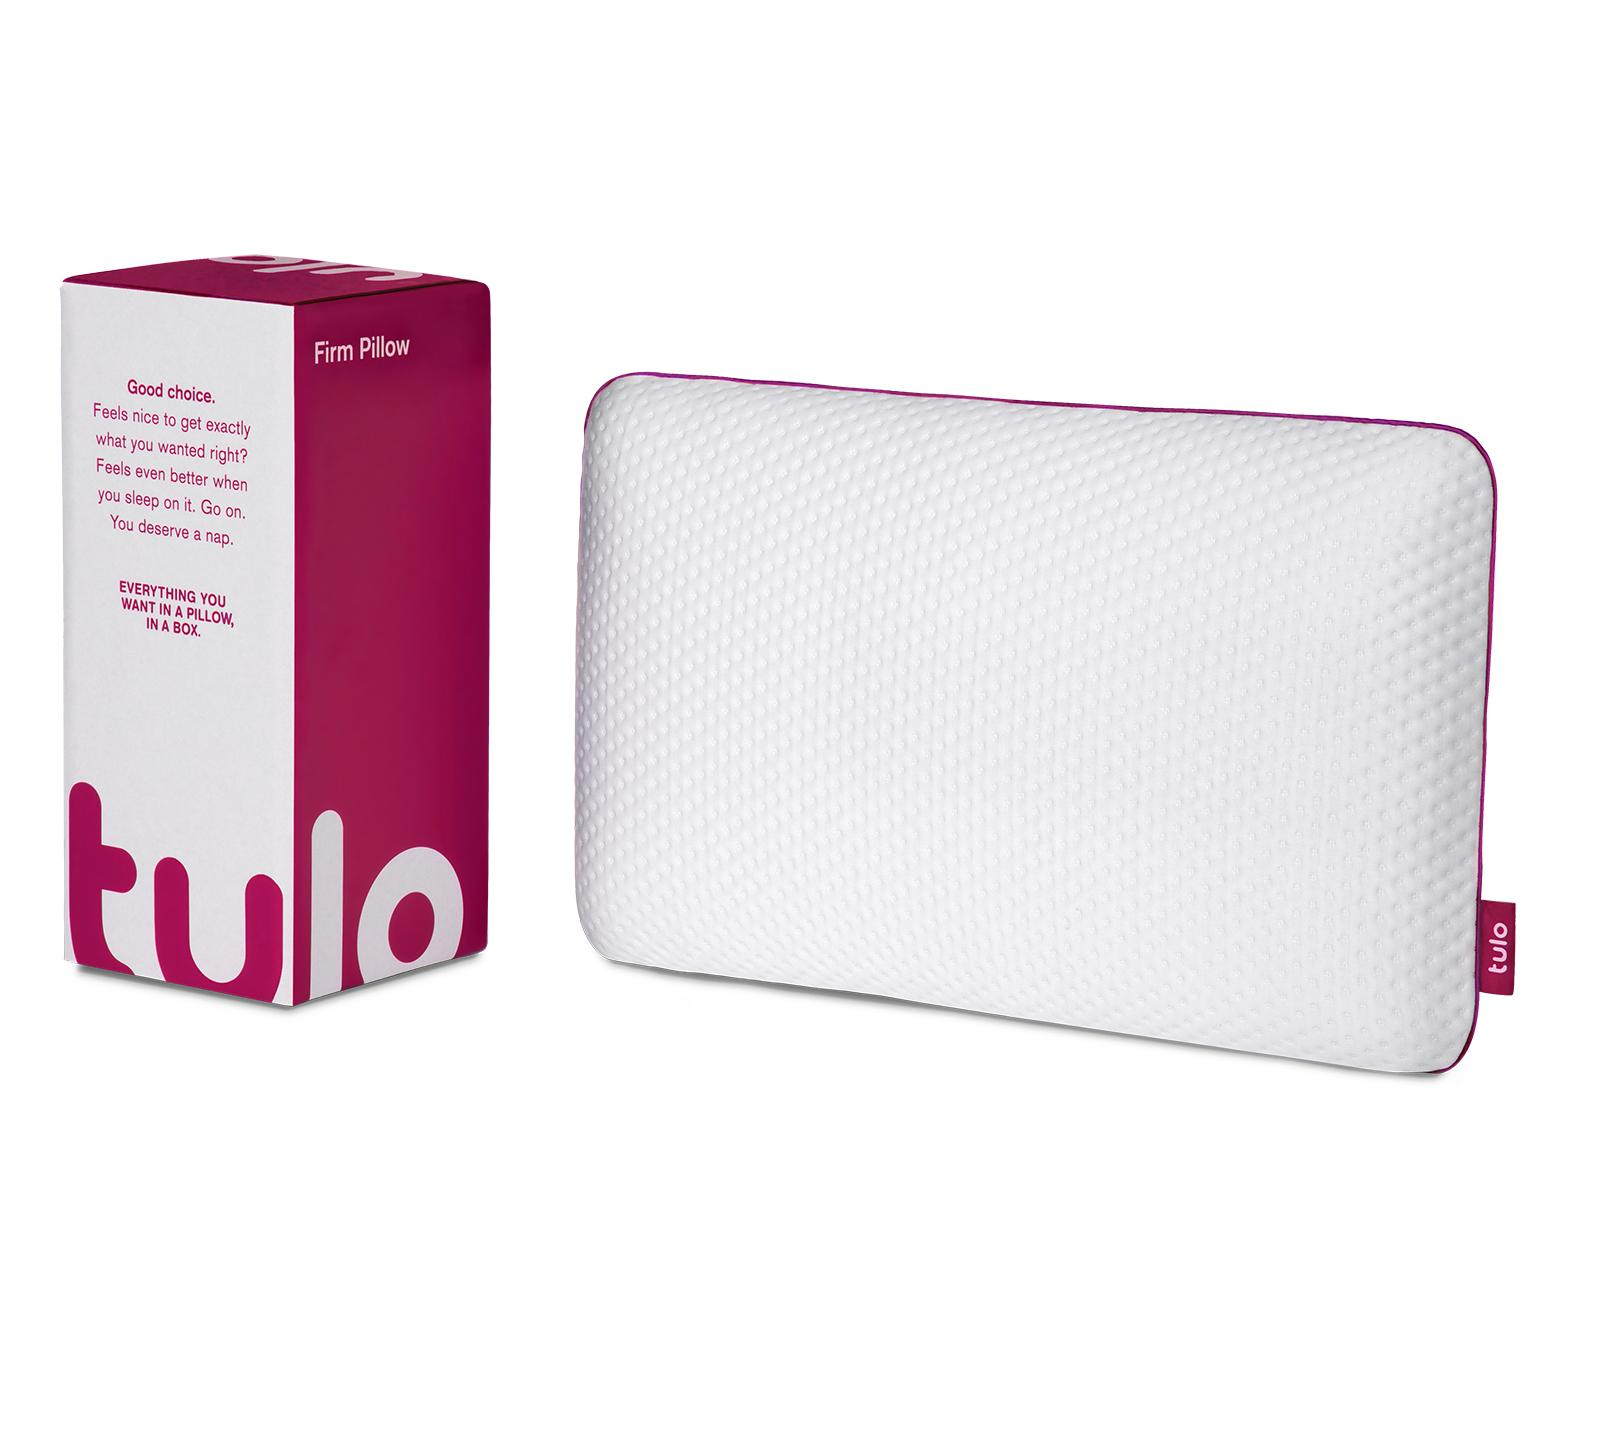 tulo | Cooling Memory Foam Pillow - Tulo firm, Standard